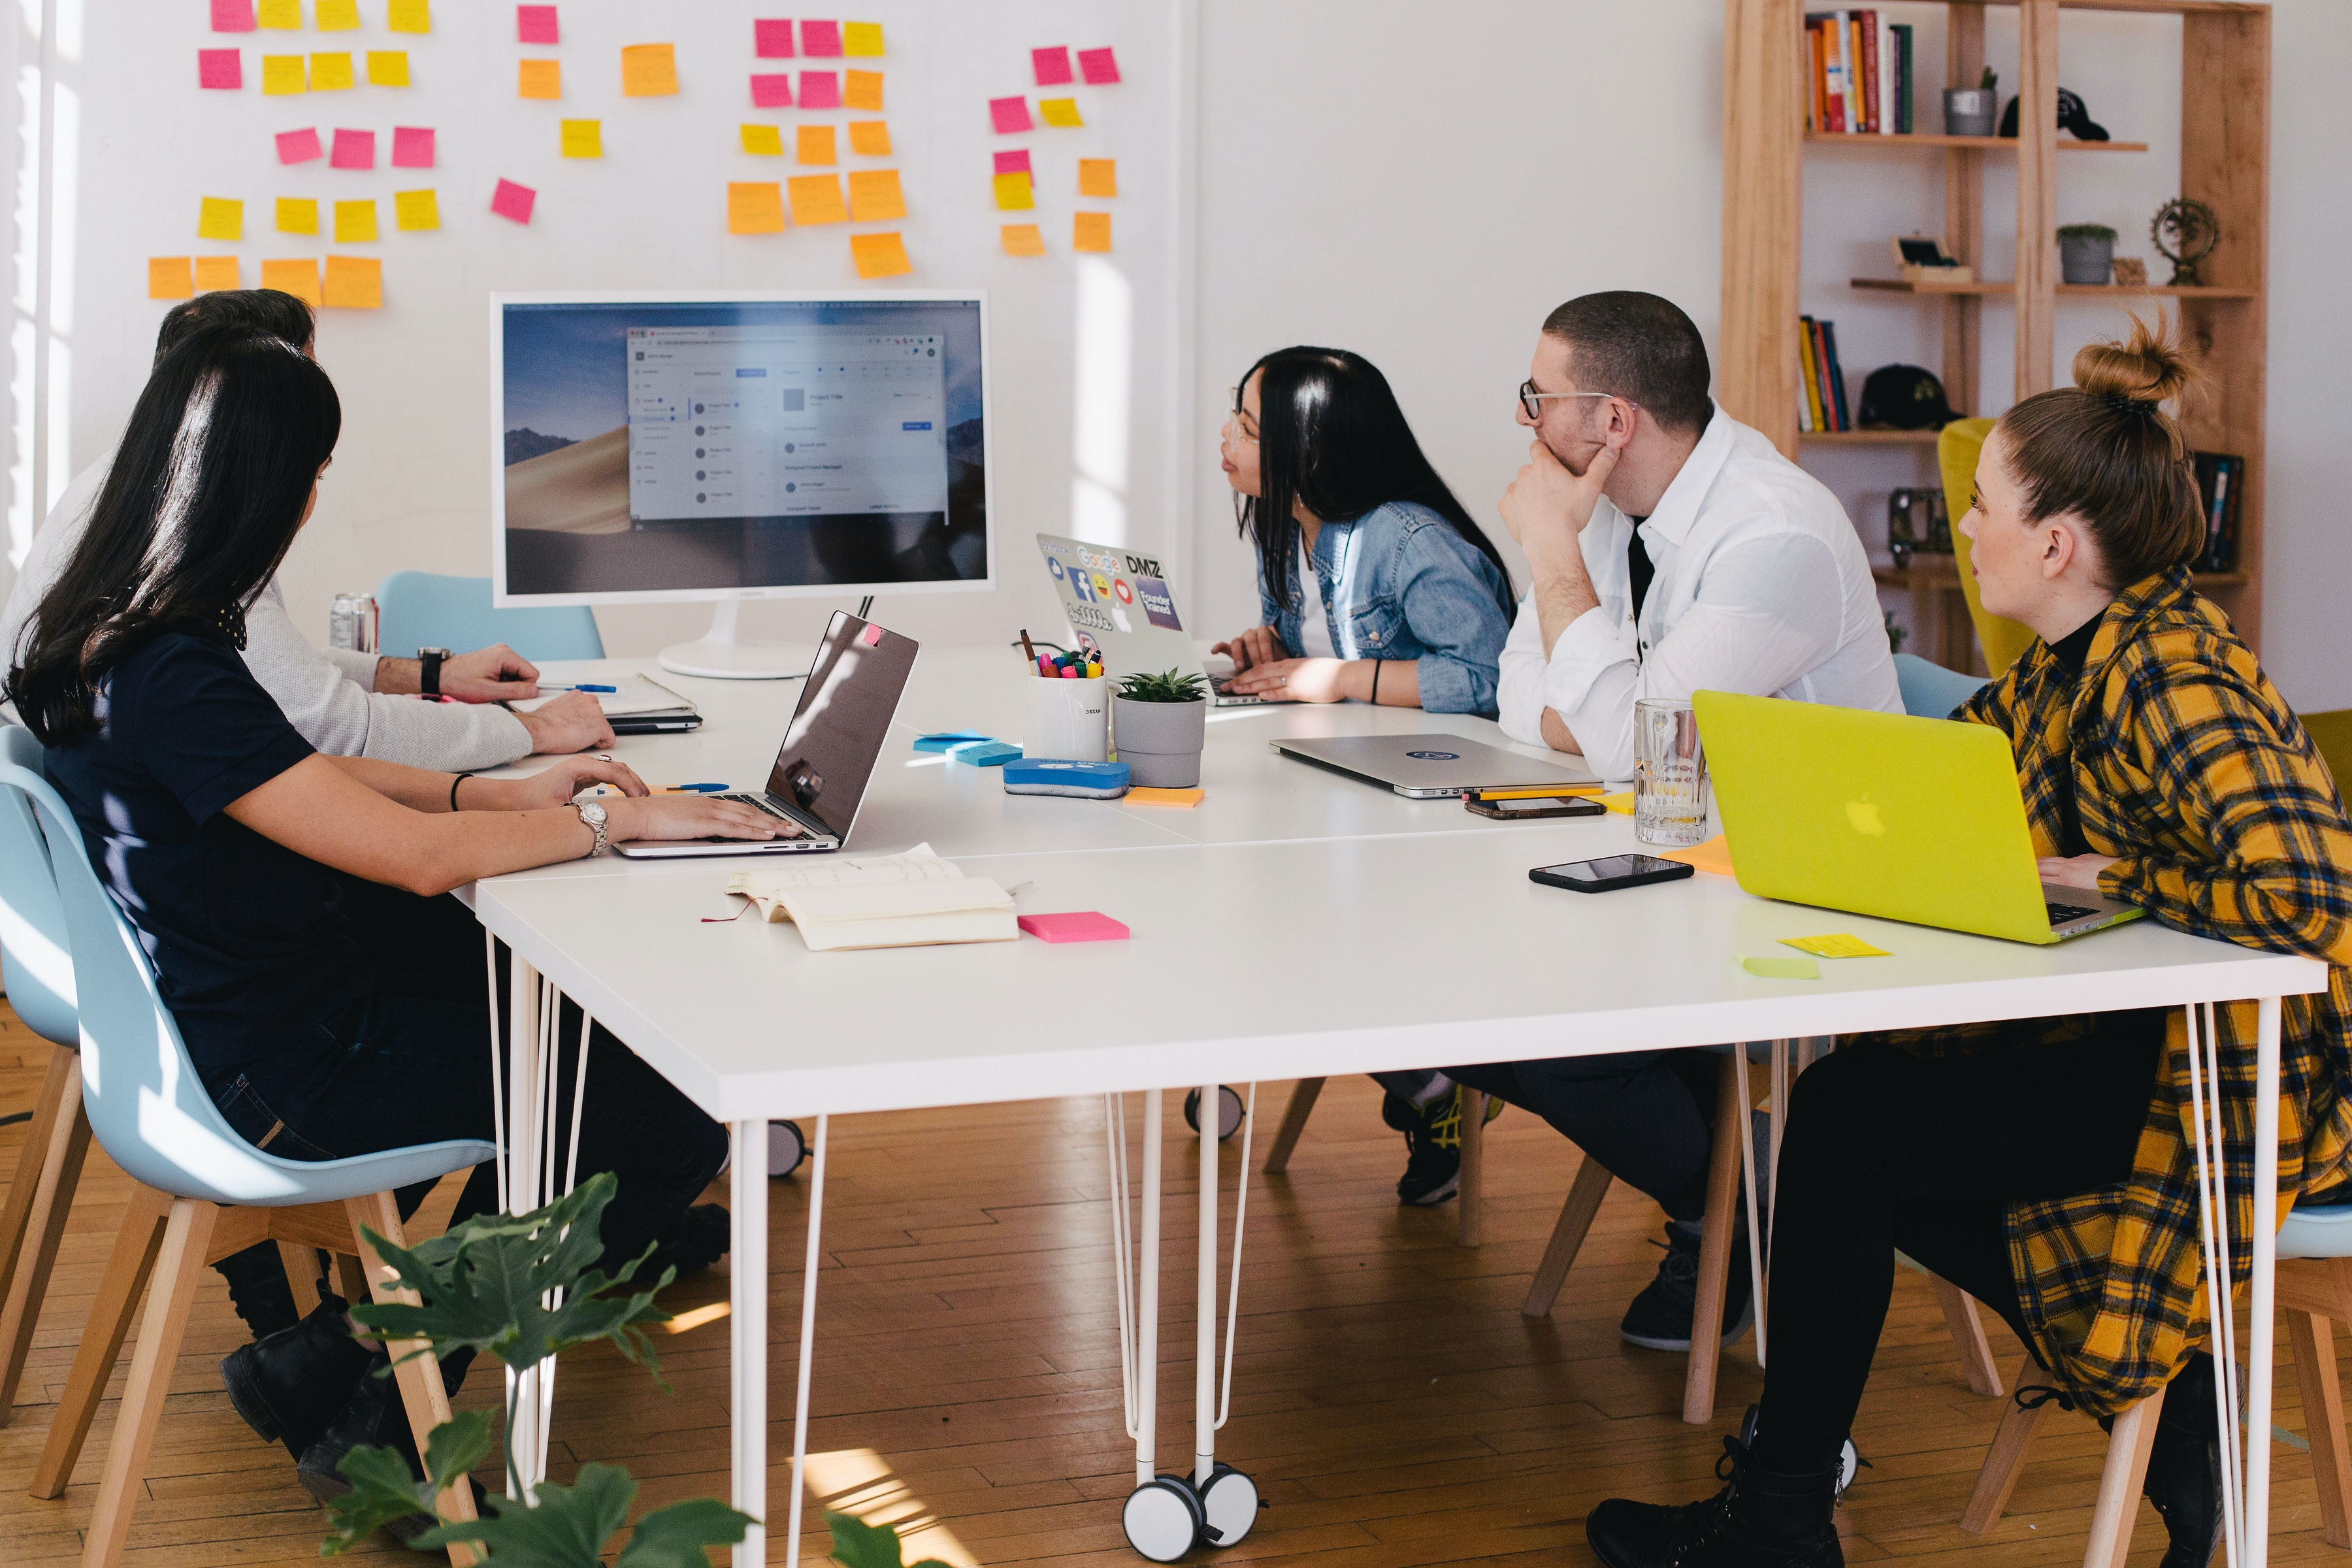 A group of people in an office sit at a table with a monitor, and array of post it notes on the wall.